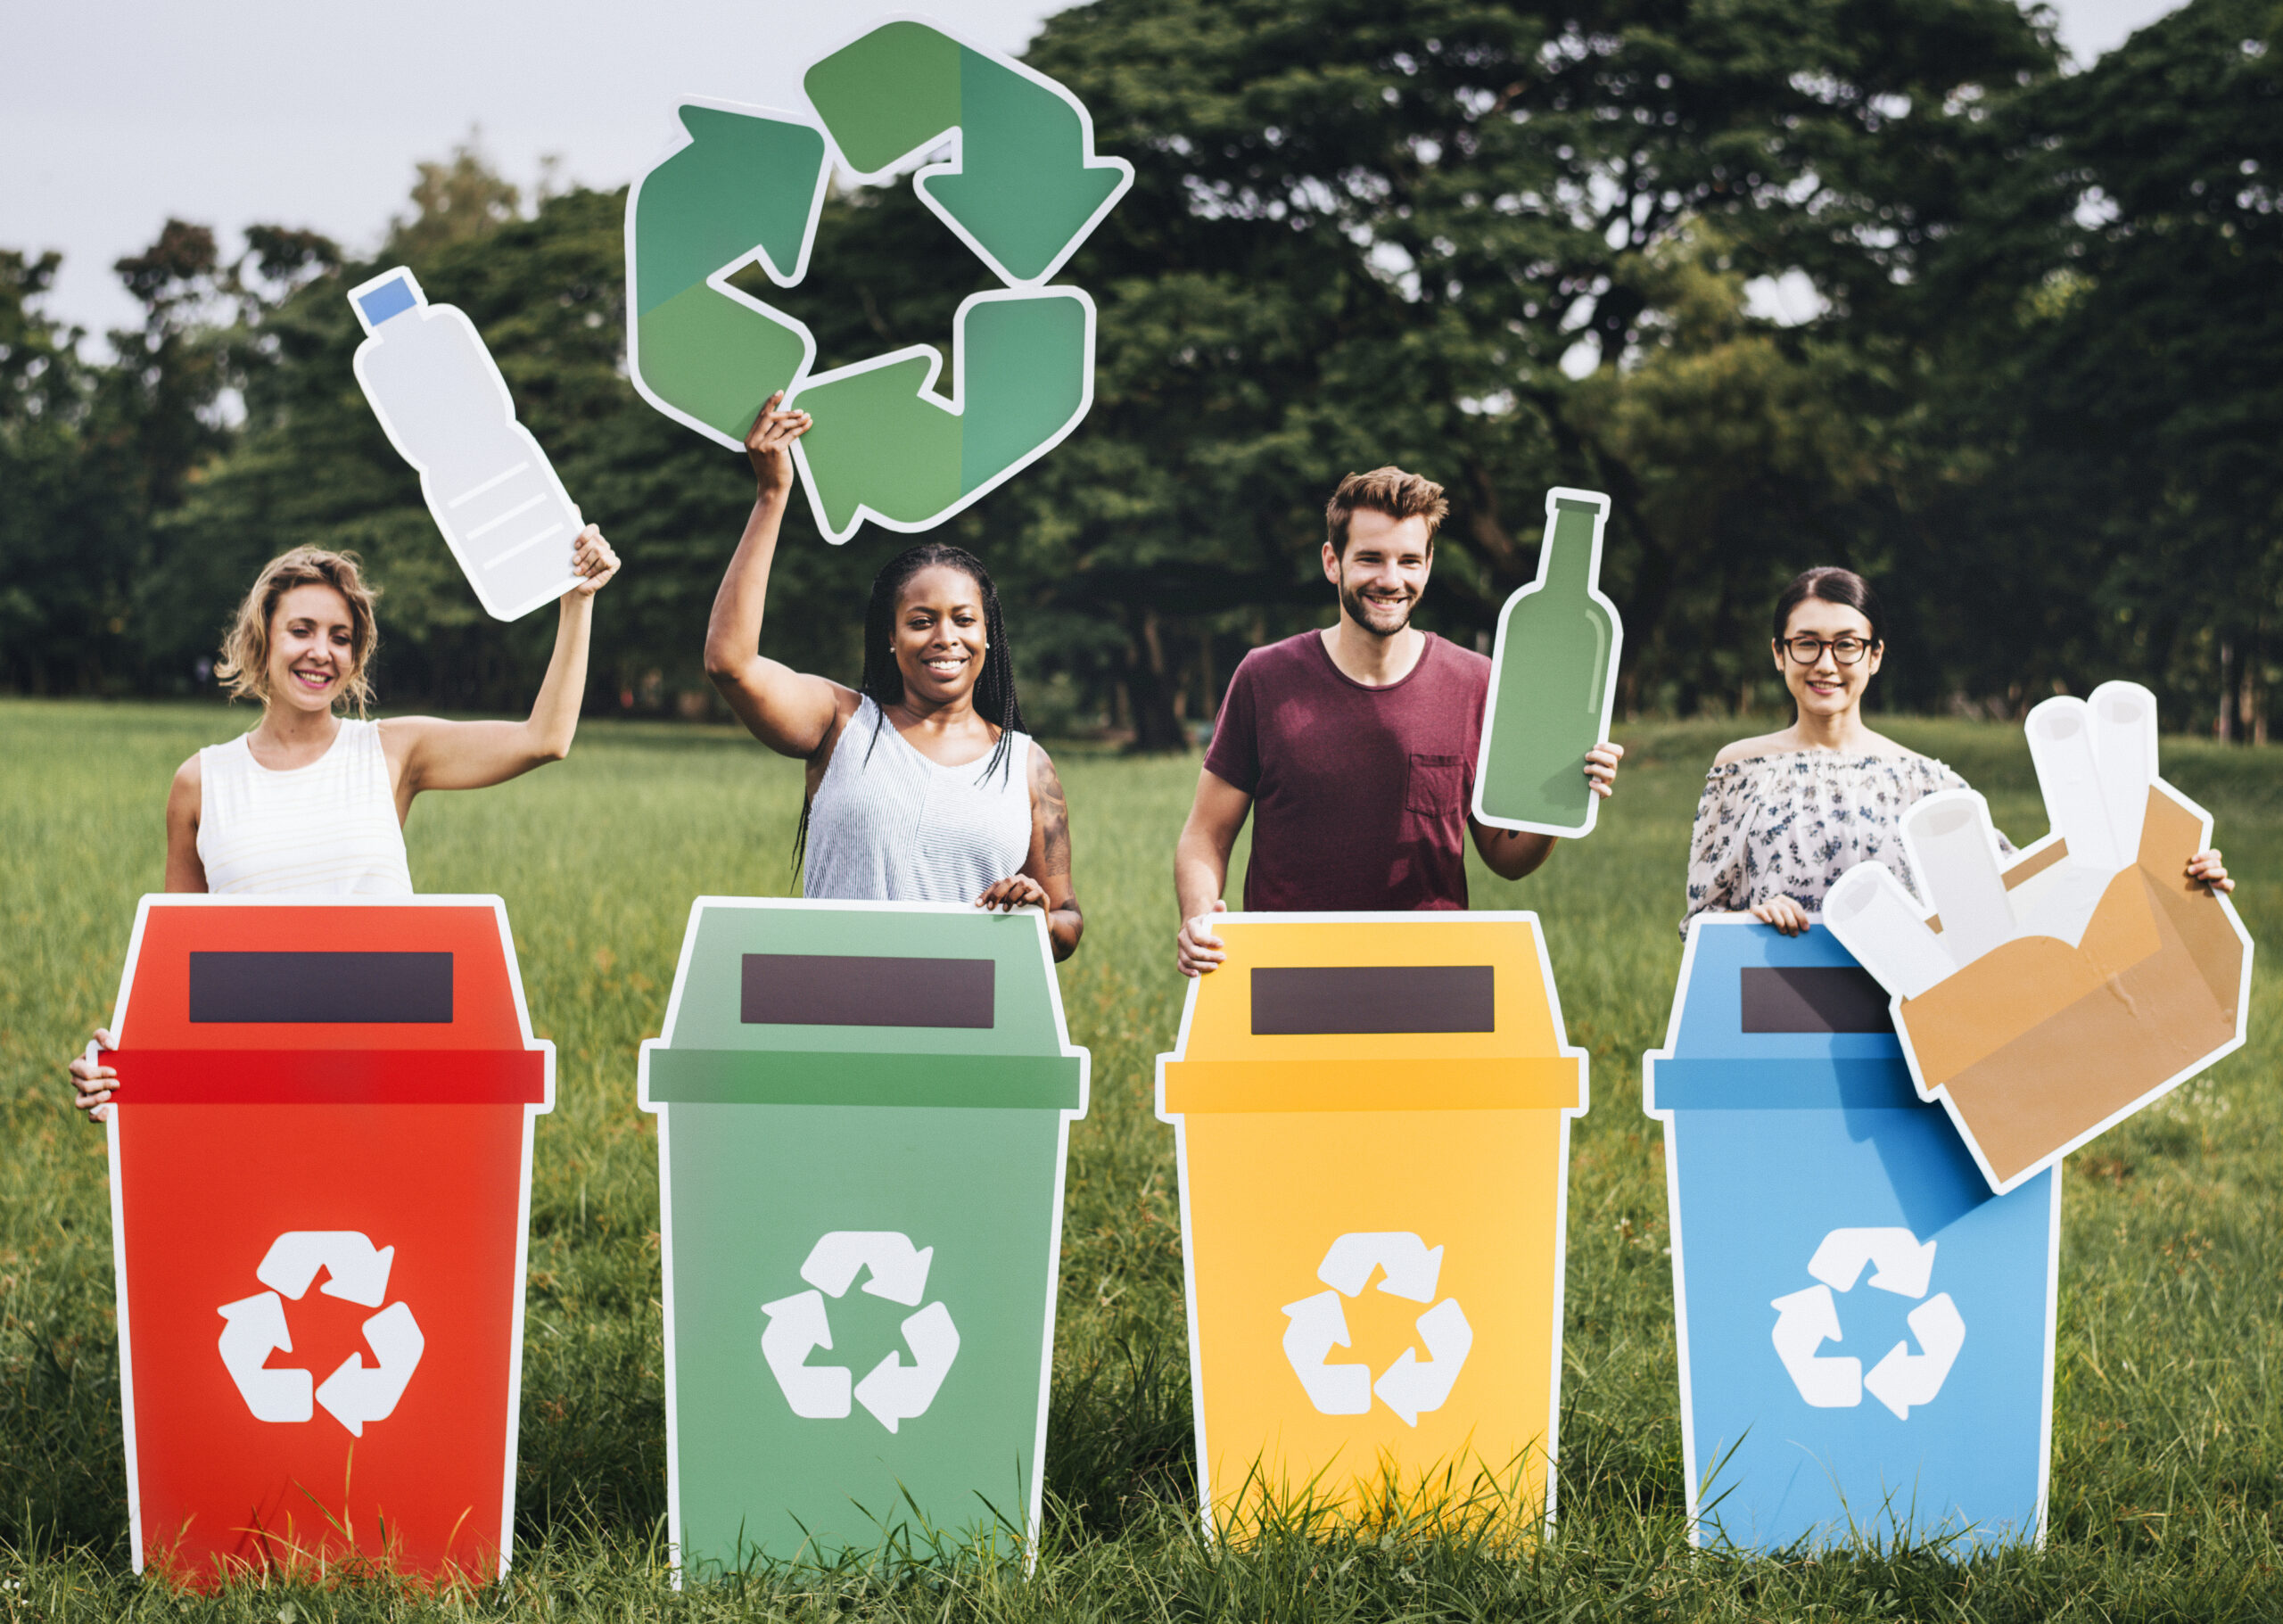 Group of people in front of recycling bins